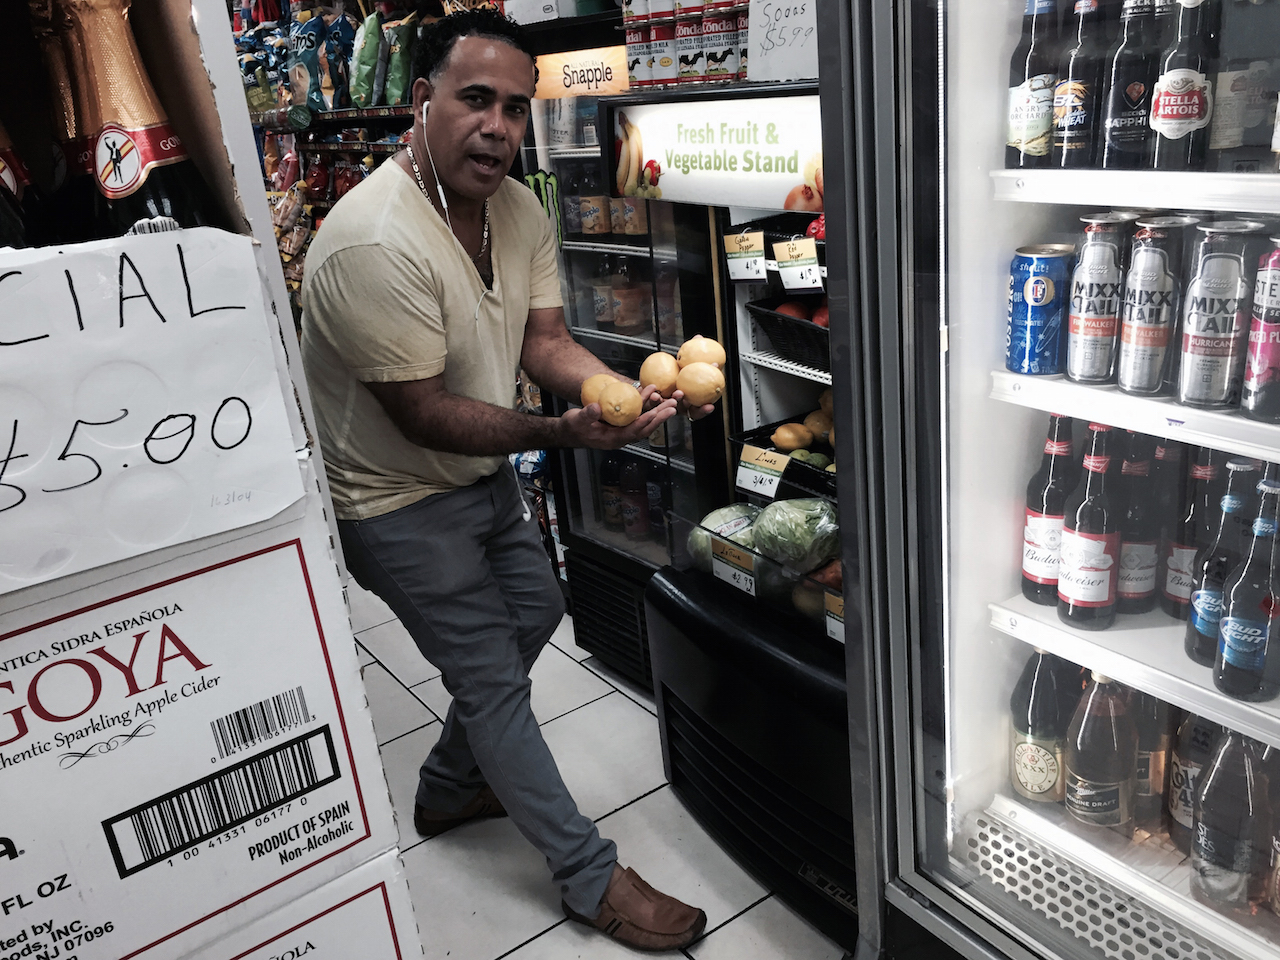 Bodegas adapt to healthier diets